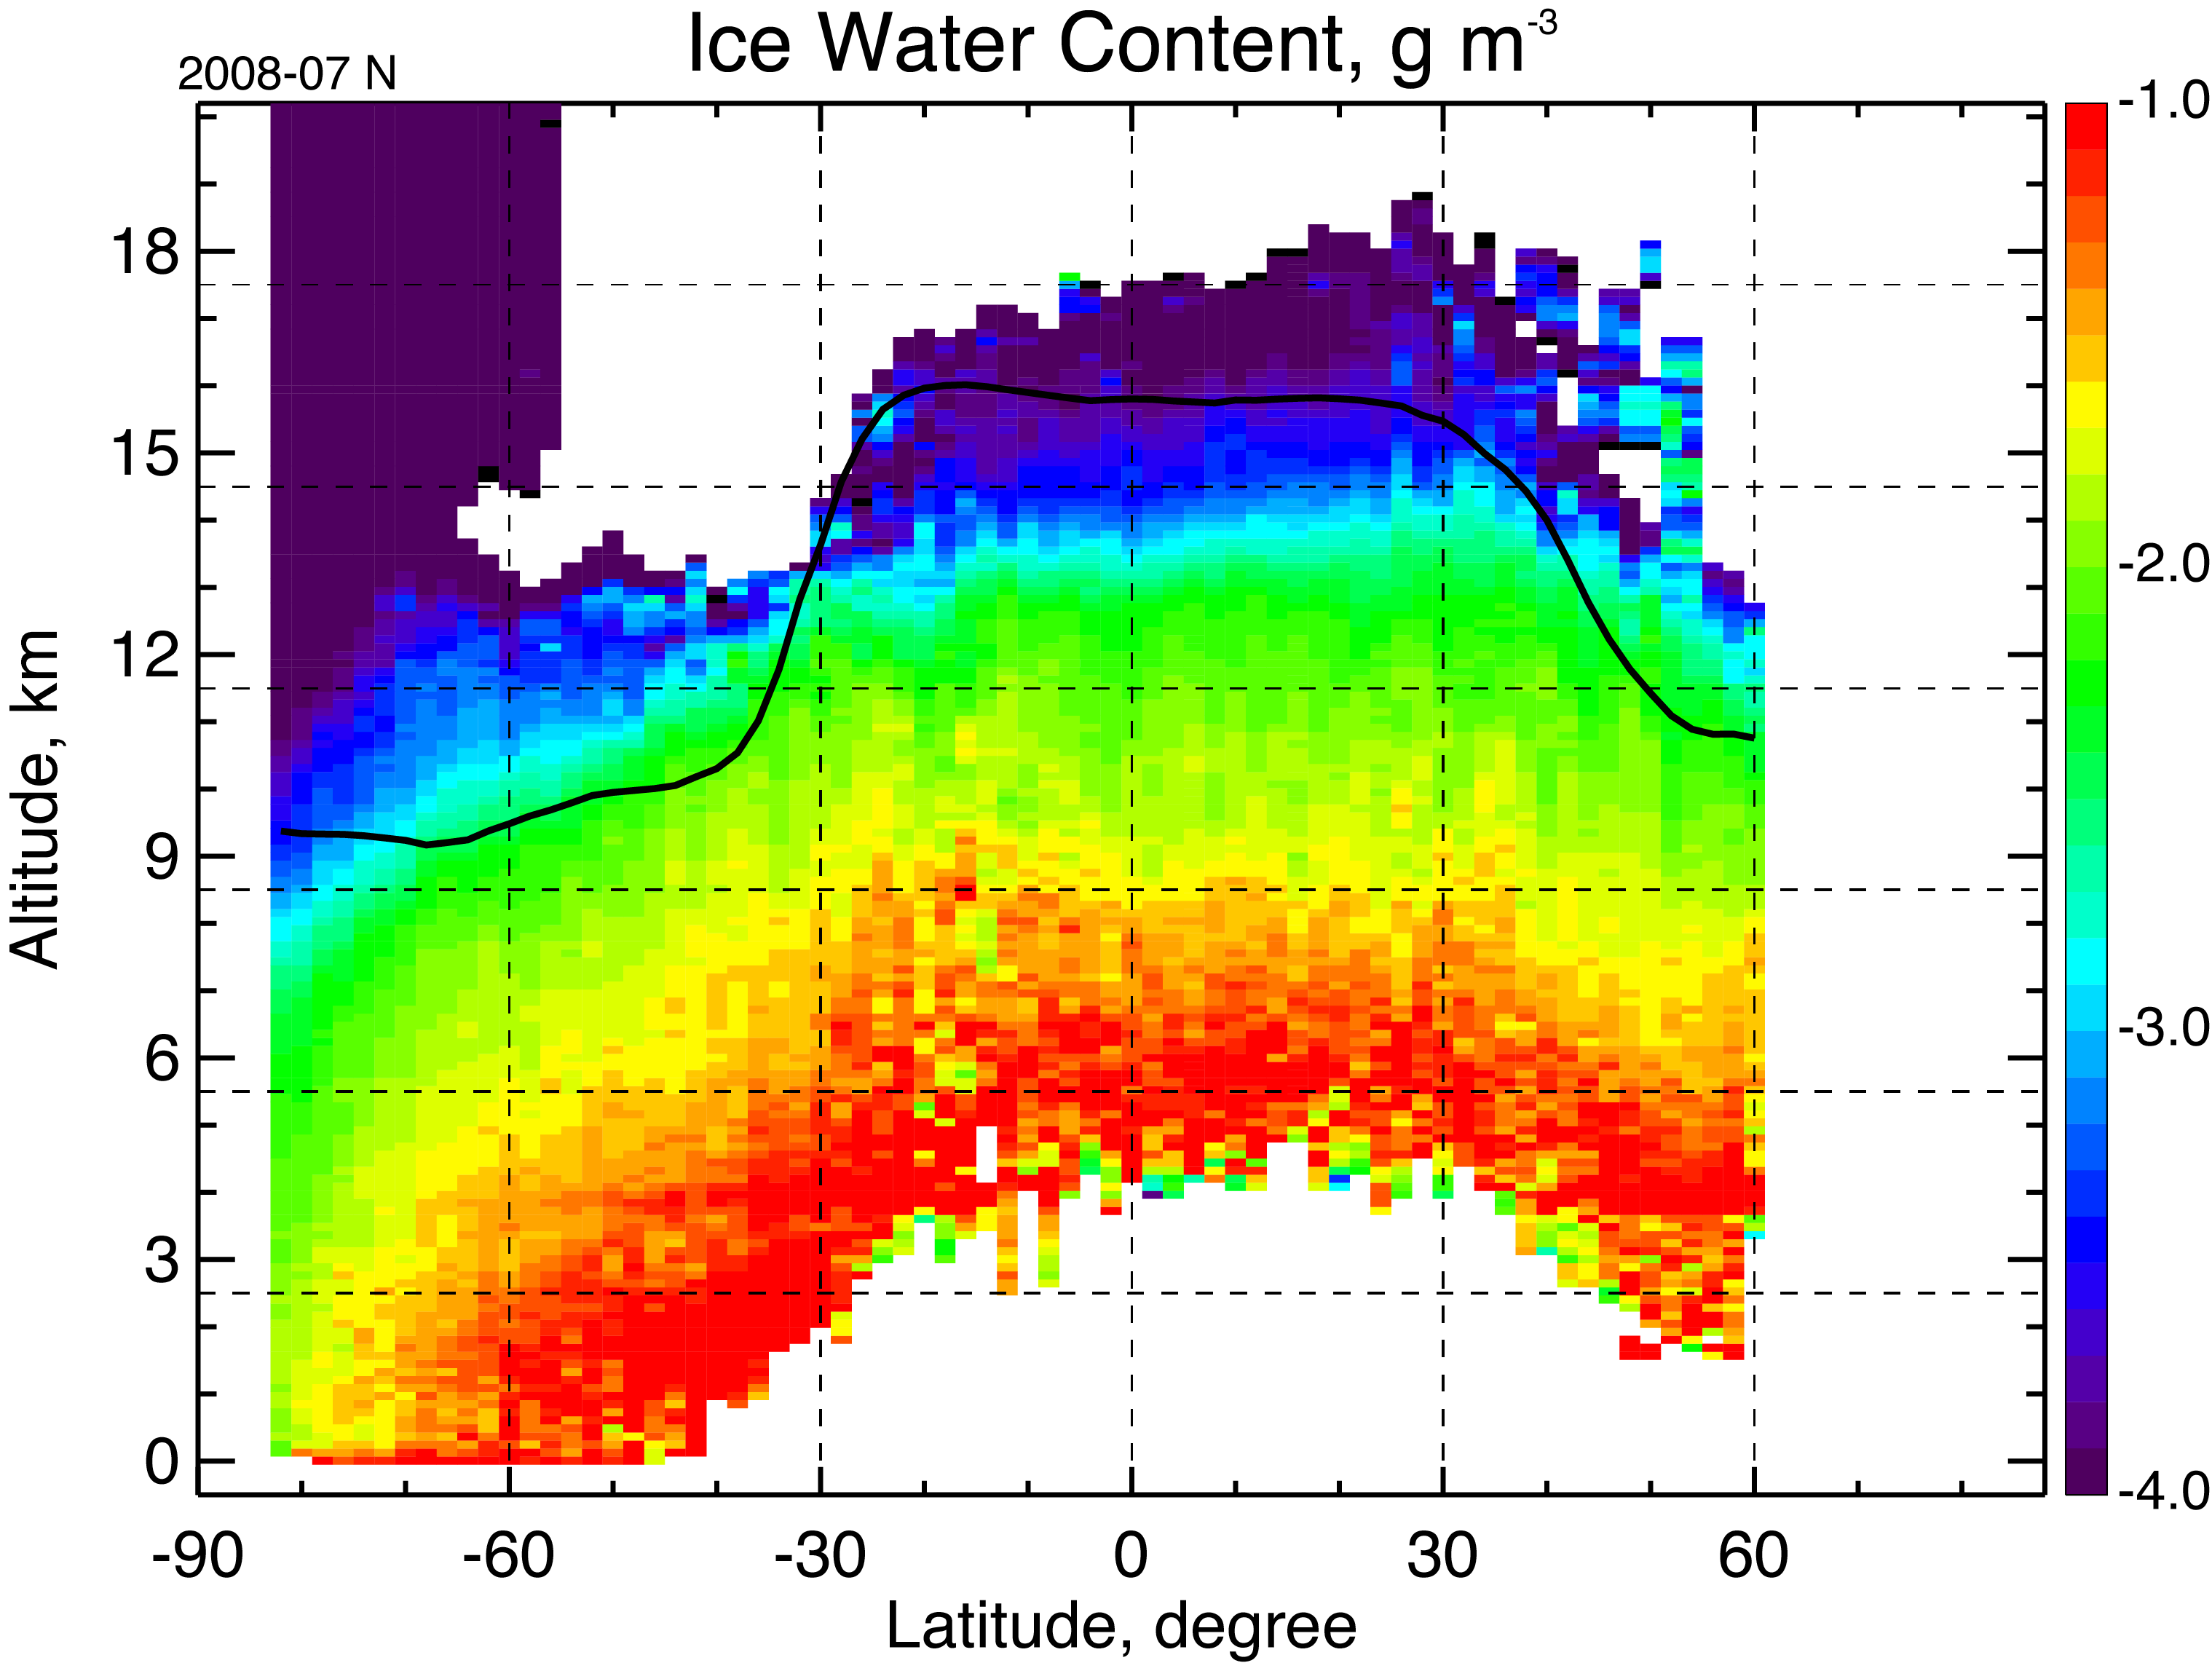 CALIPSO - Data Description of Lidar Level 3 Monthly Ice Cloud Data